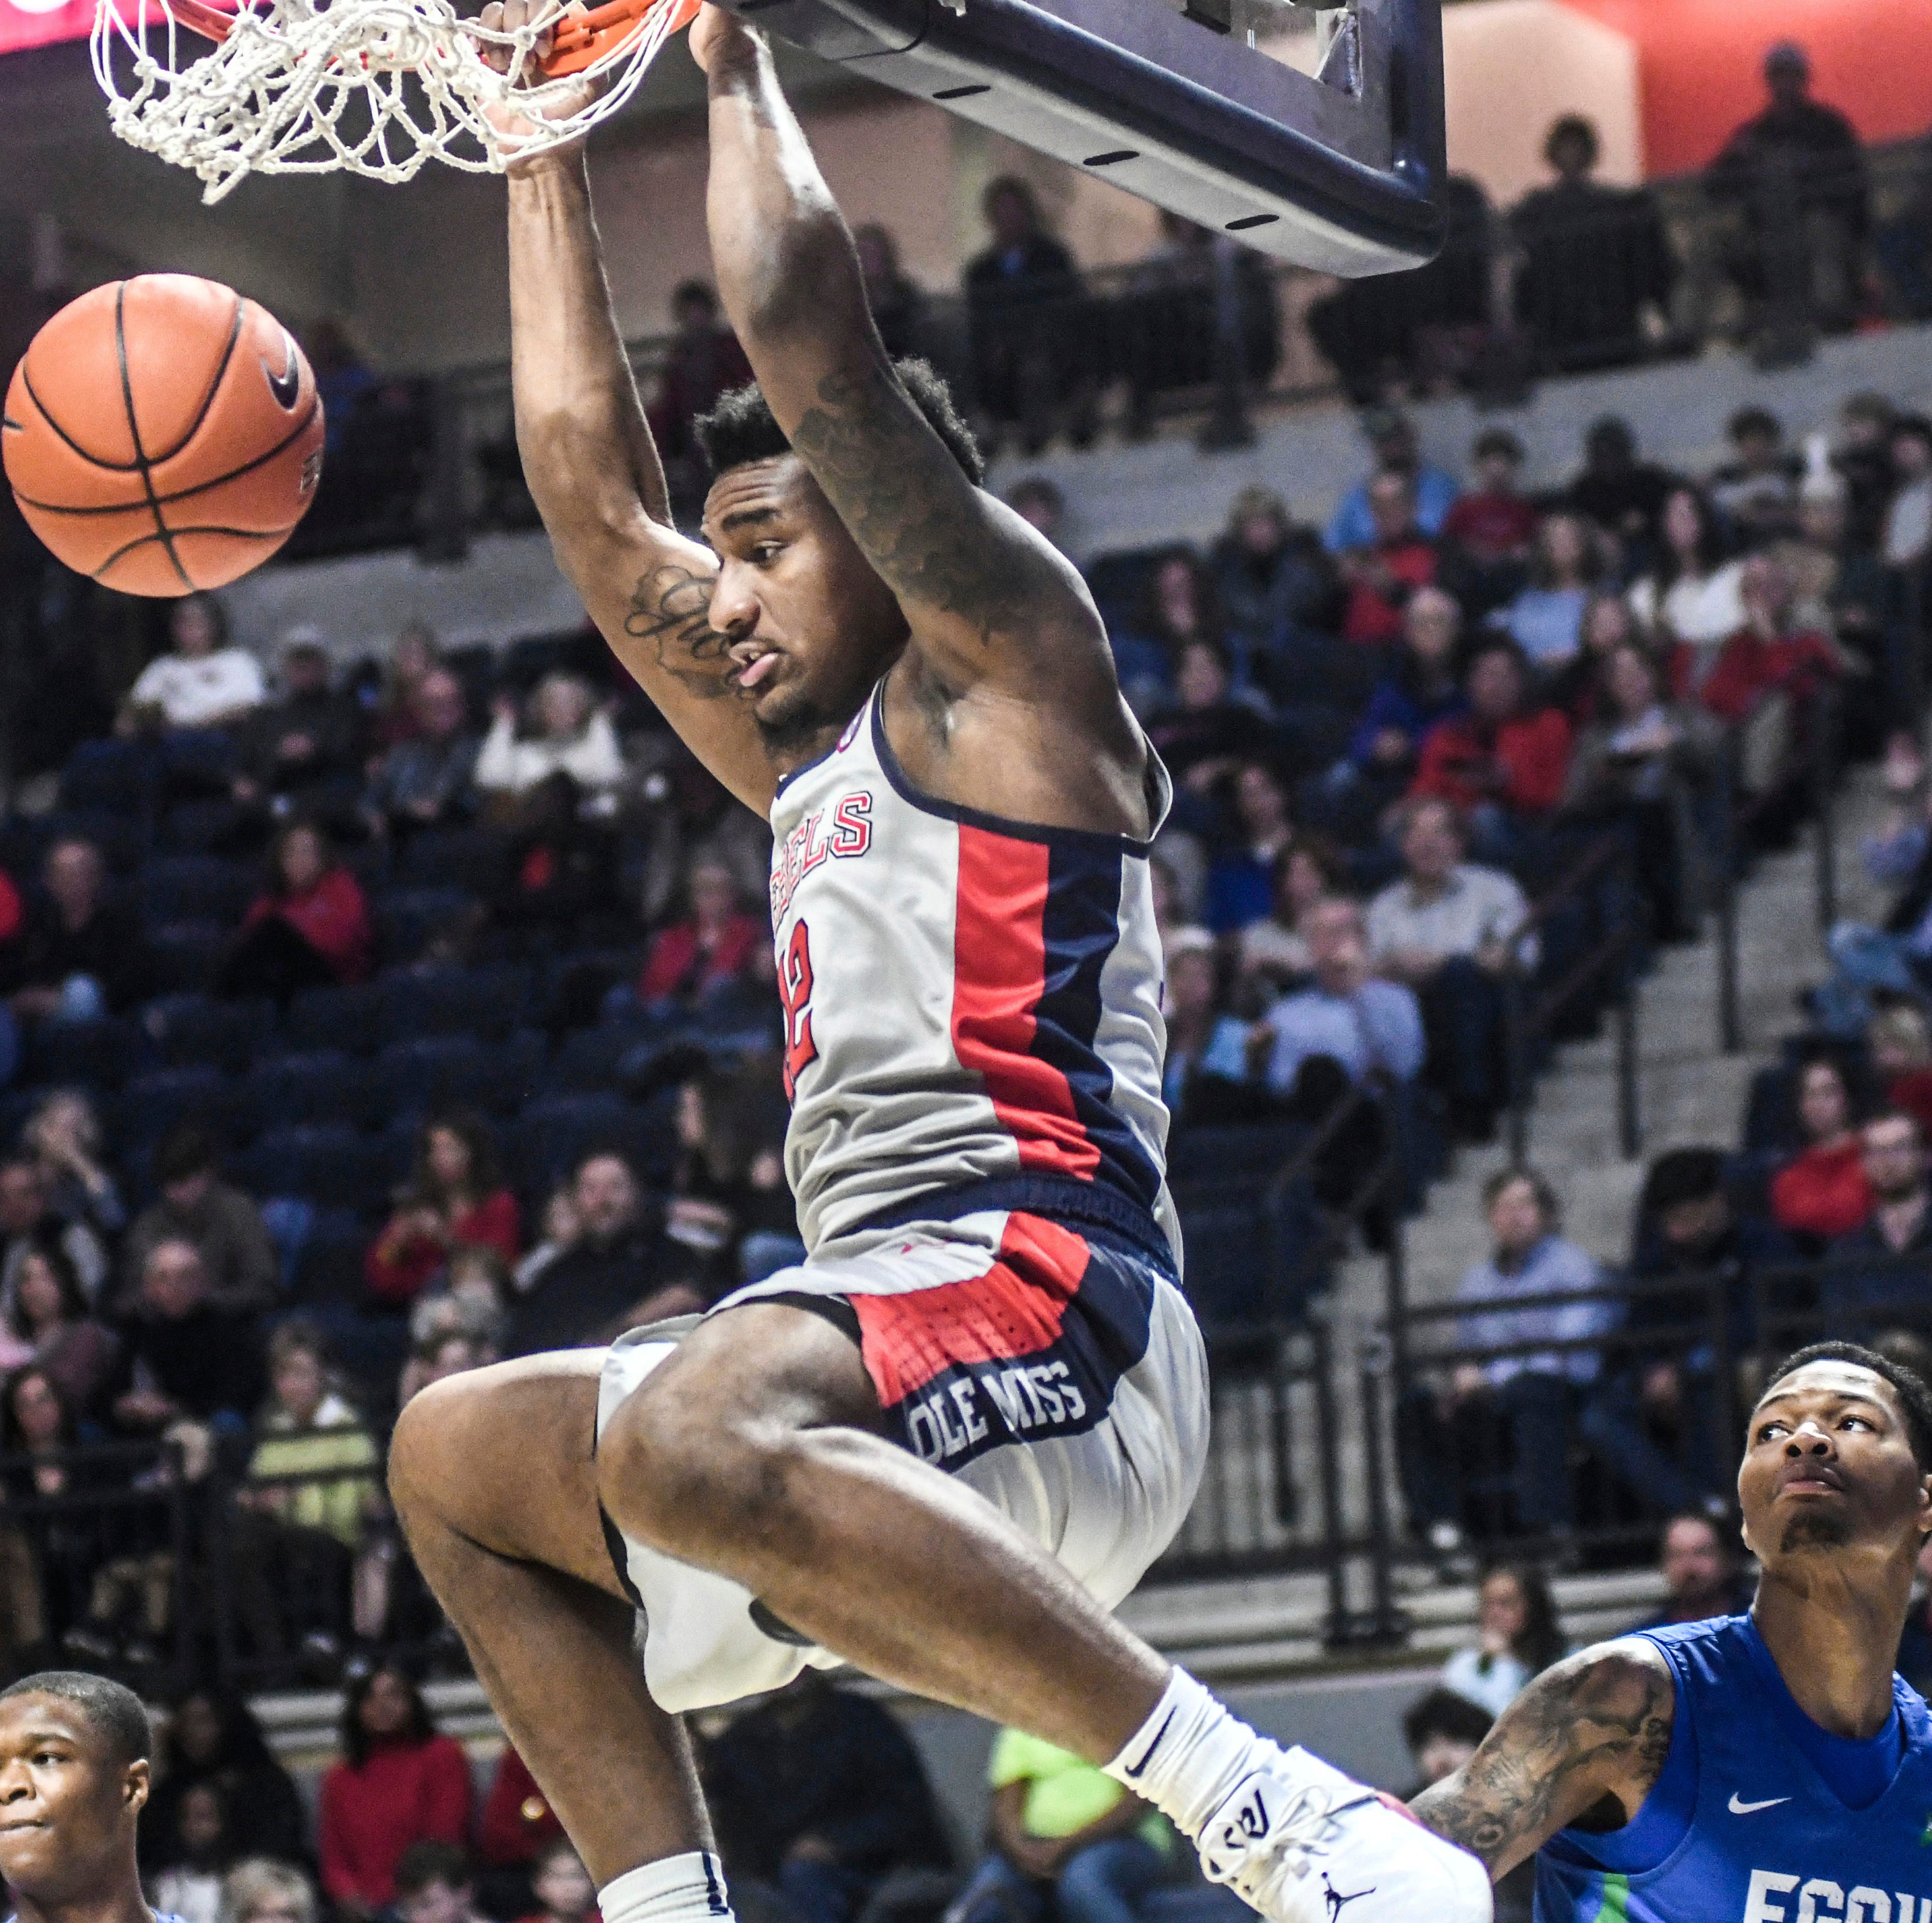 Ole Miss wins second-straight game, takes down Georgia 80-64